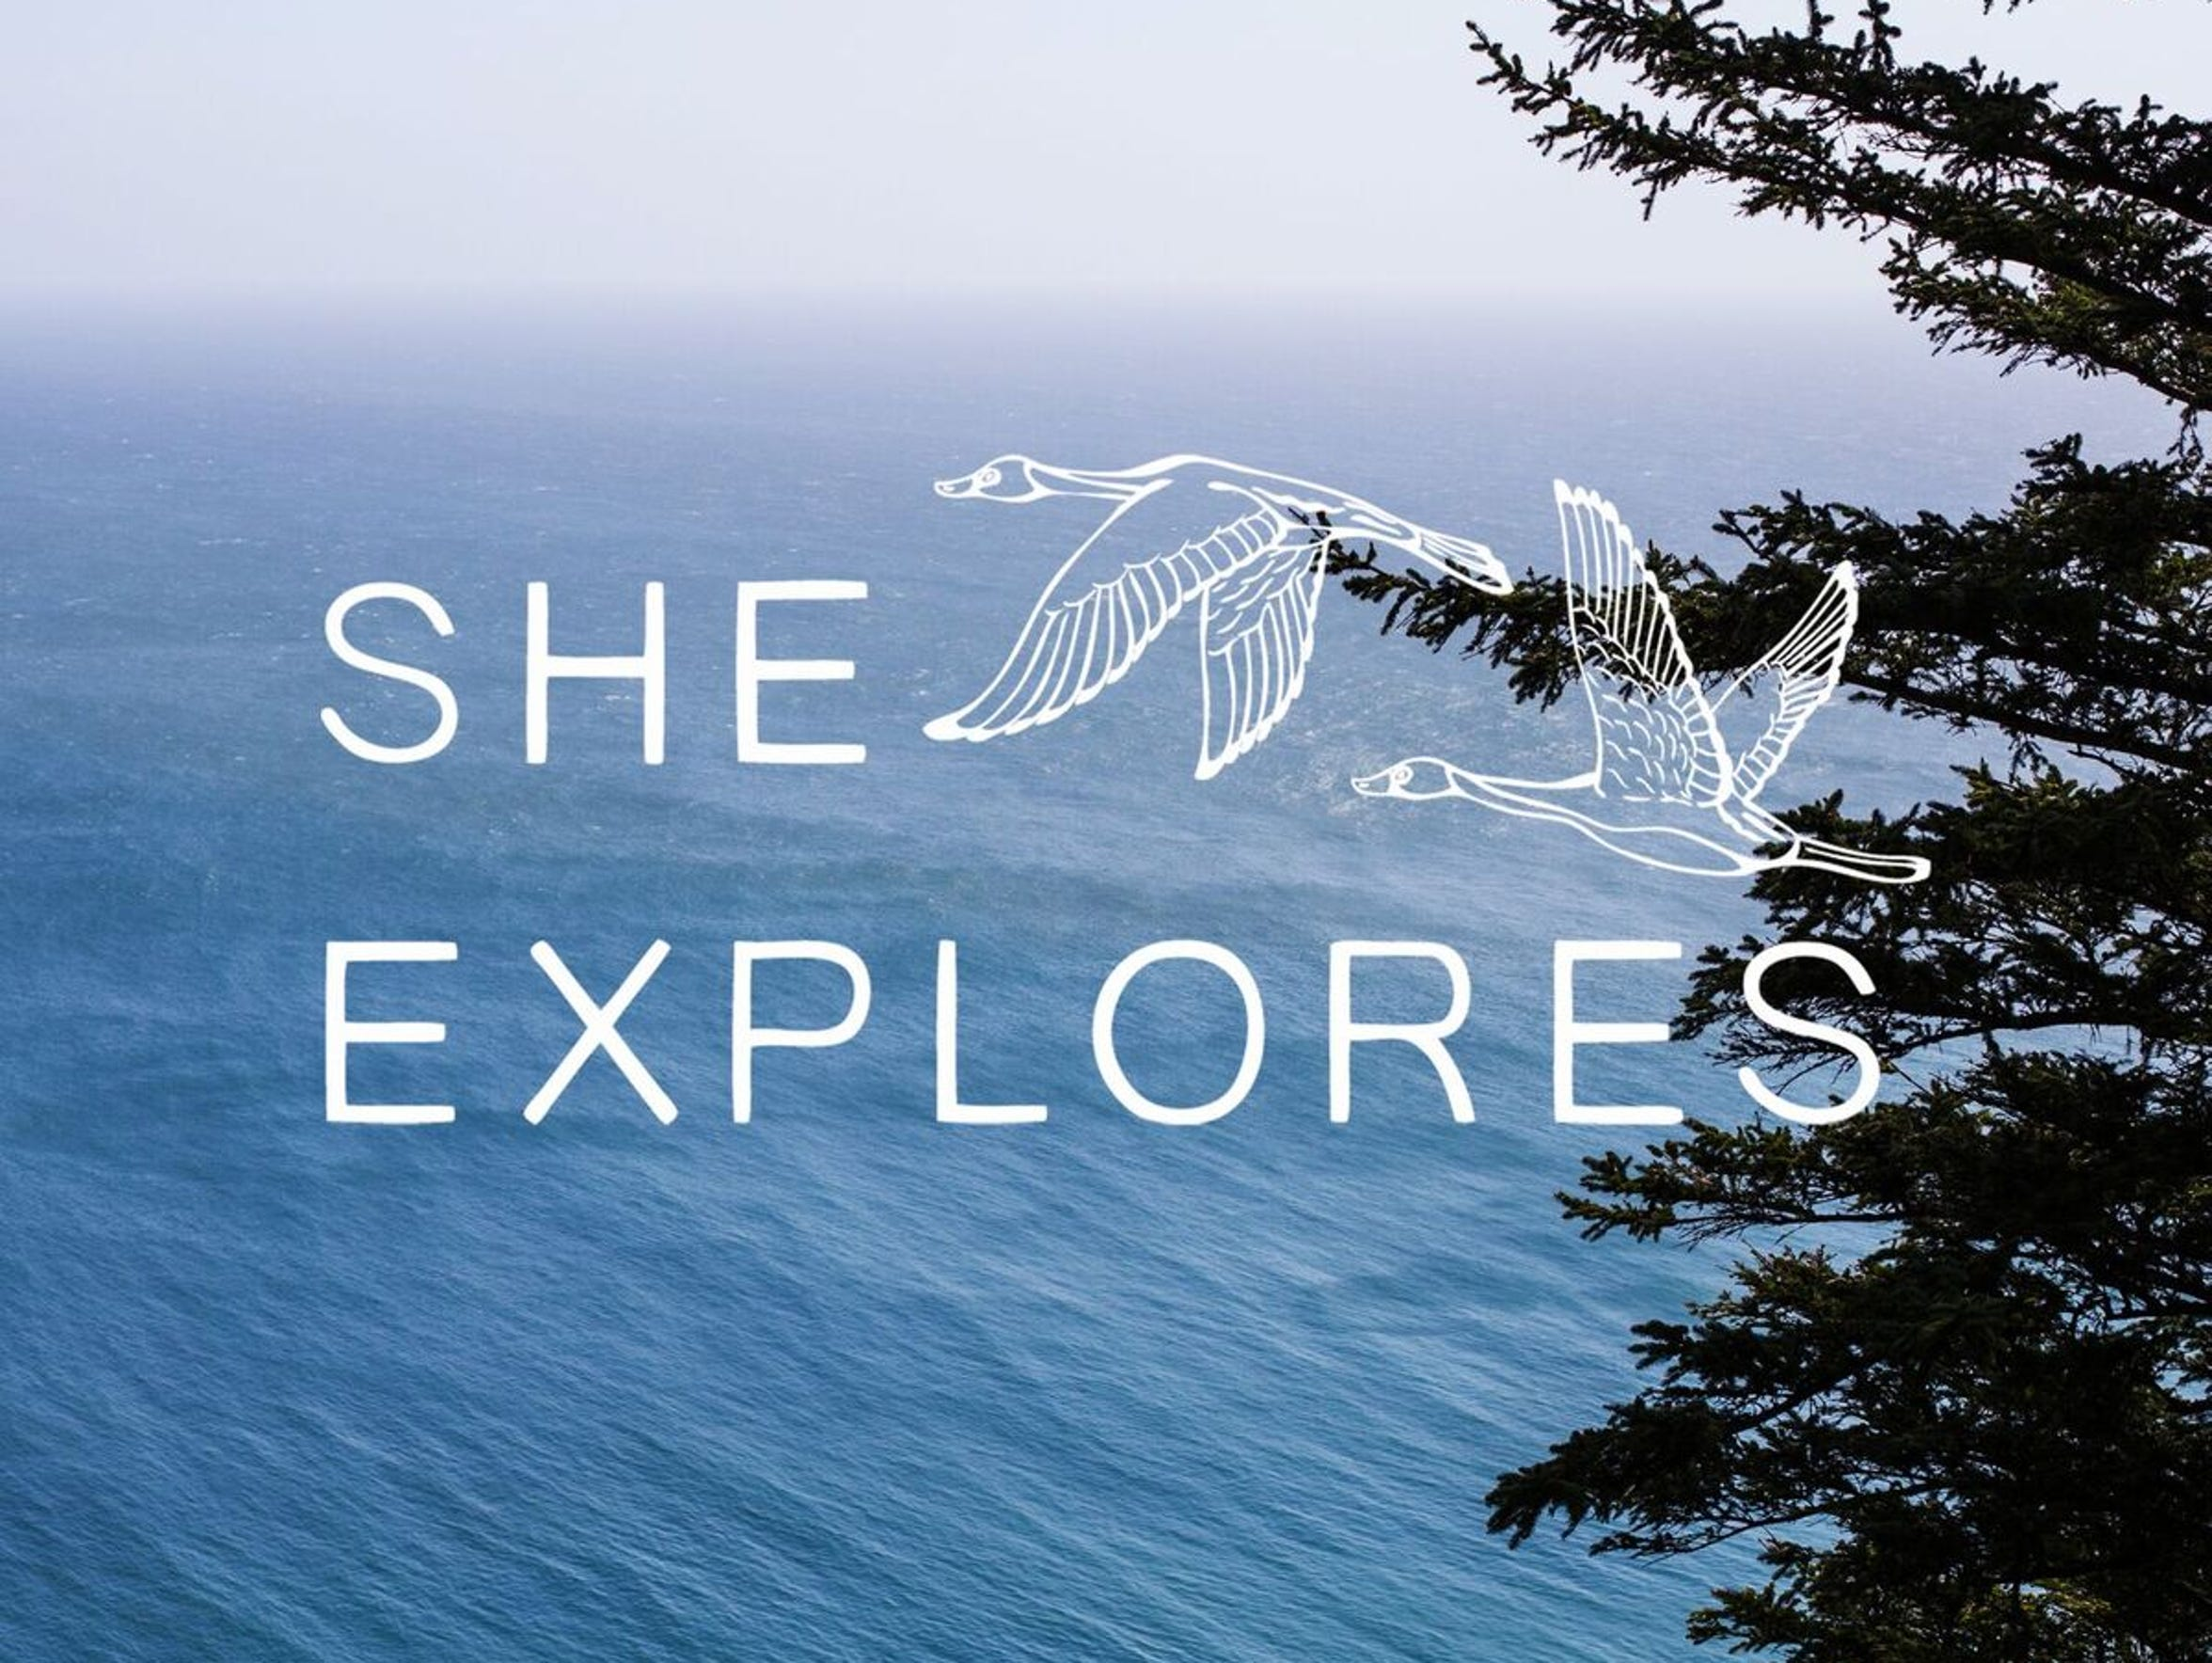 She Explores began as a website and evolved into a